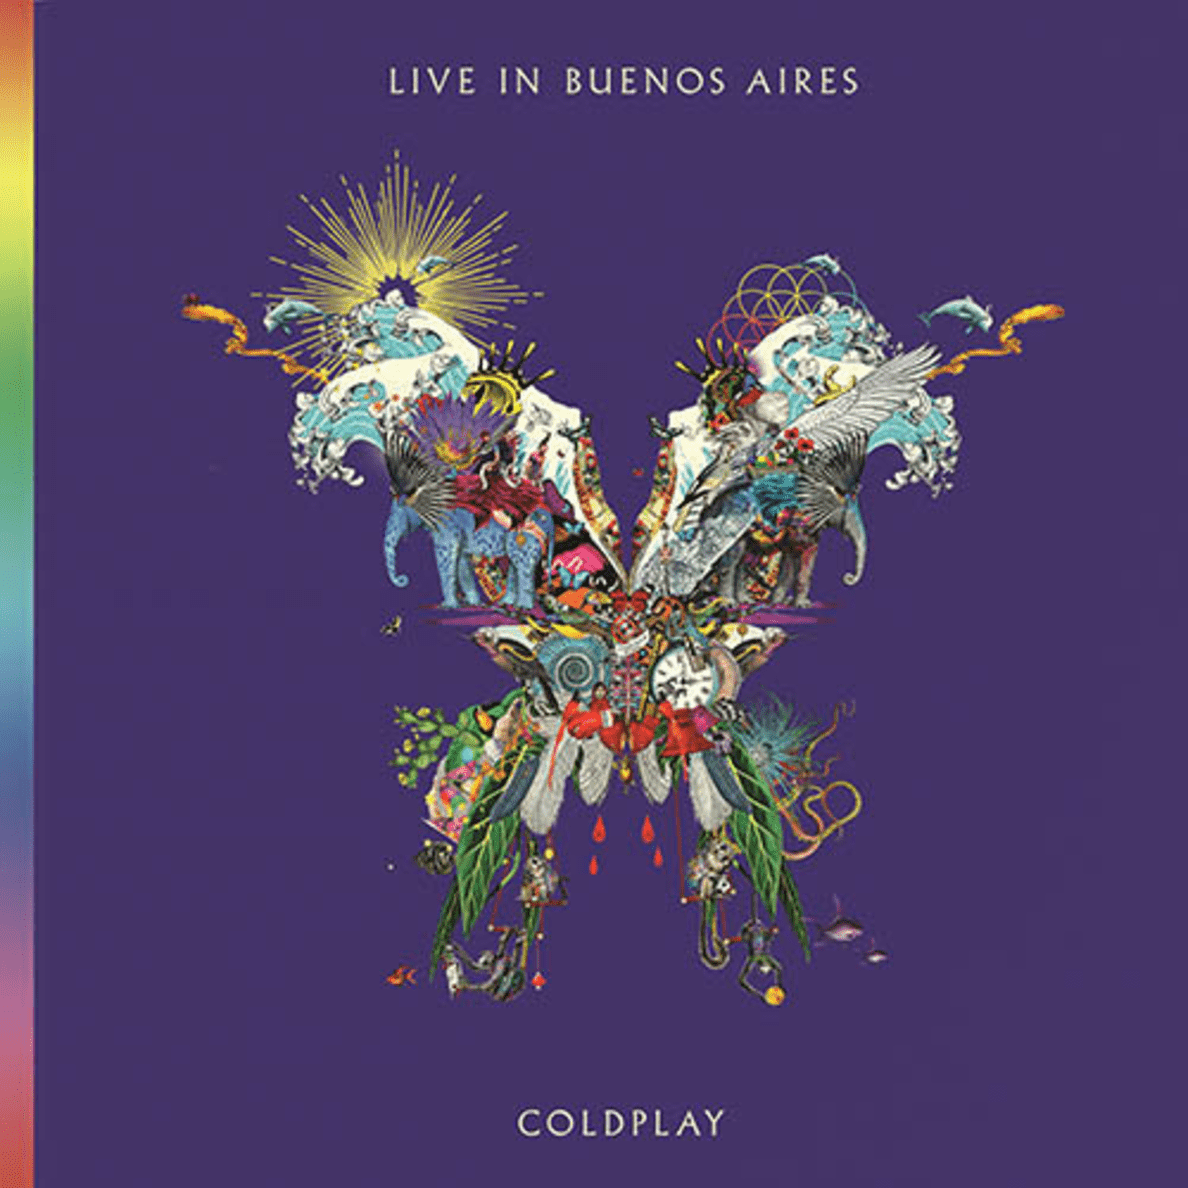 Live In Buenos Aires Coldplay auf CD